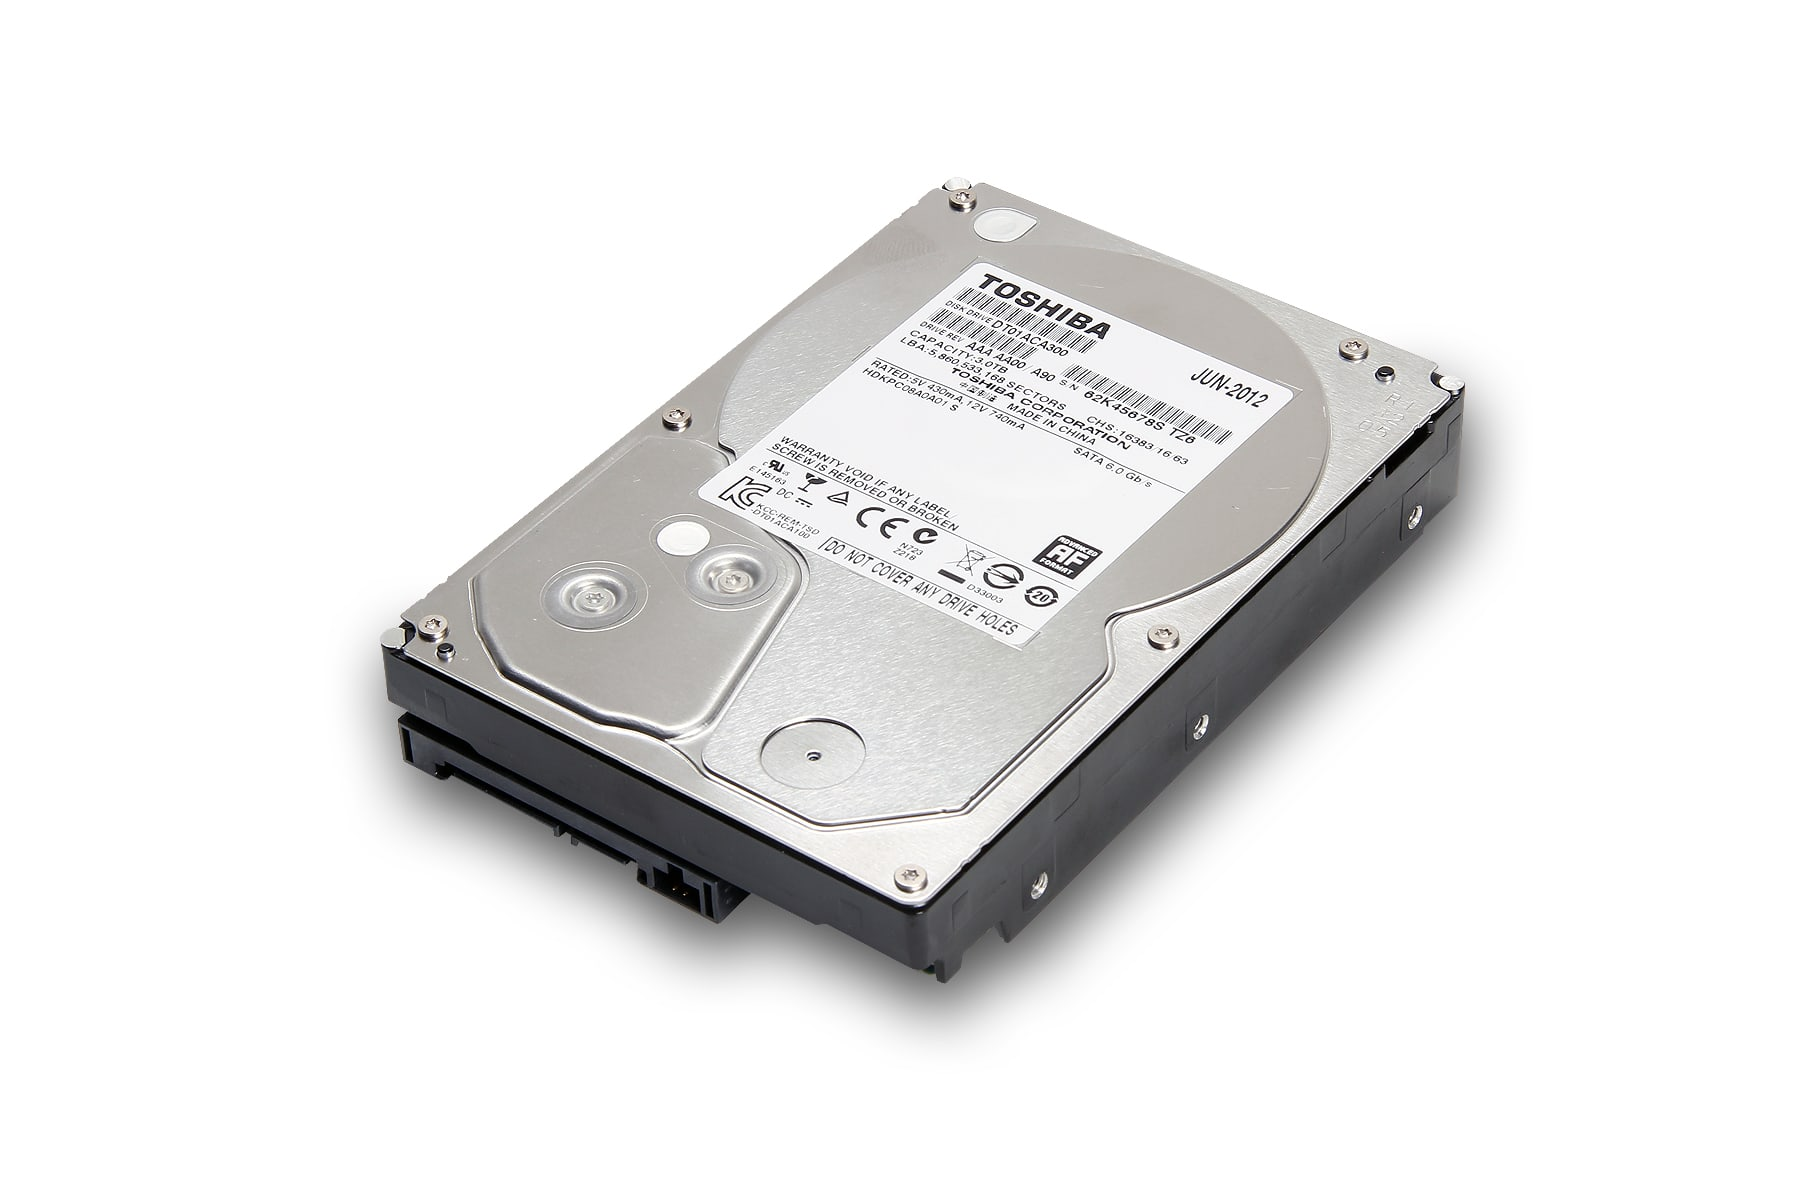 Toshiba Internal HDD DT01ACA200